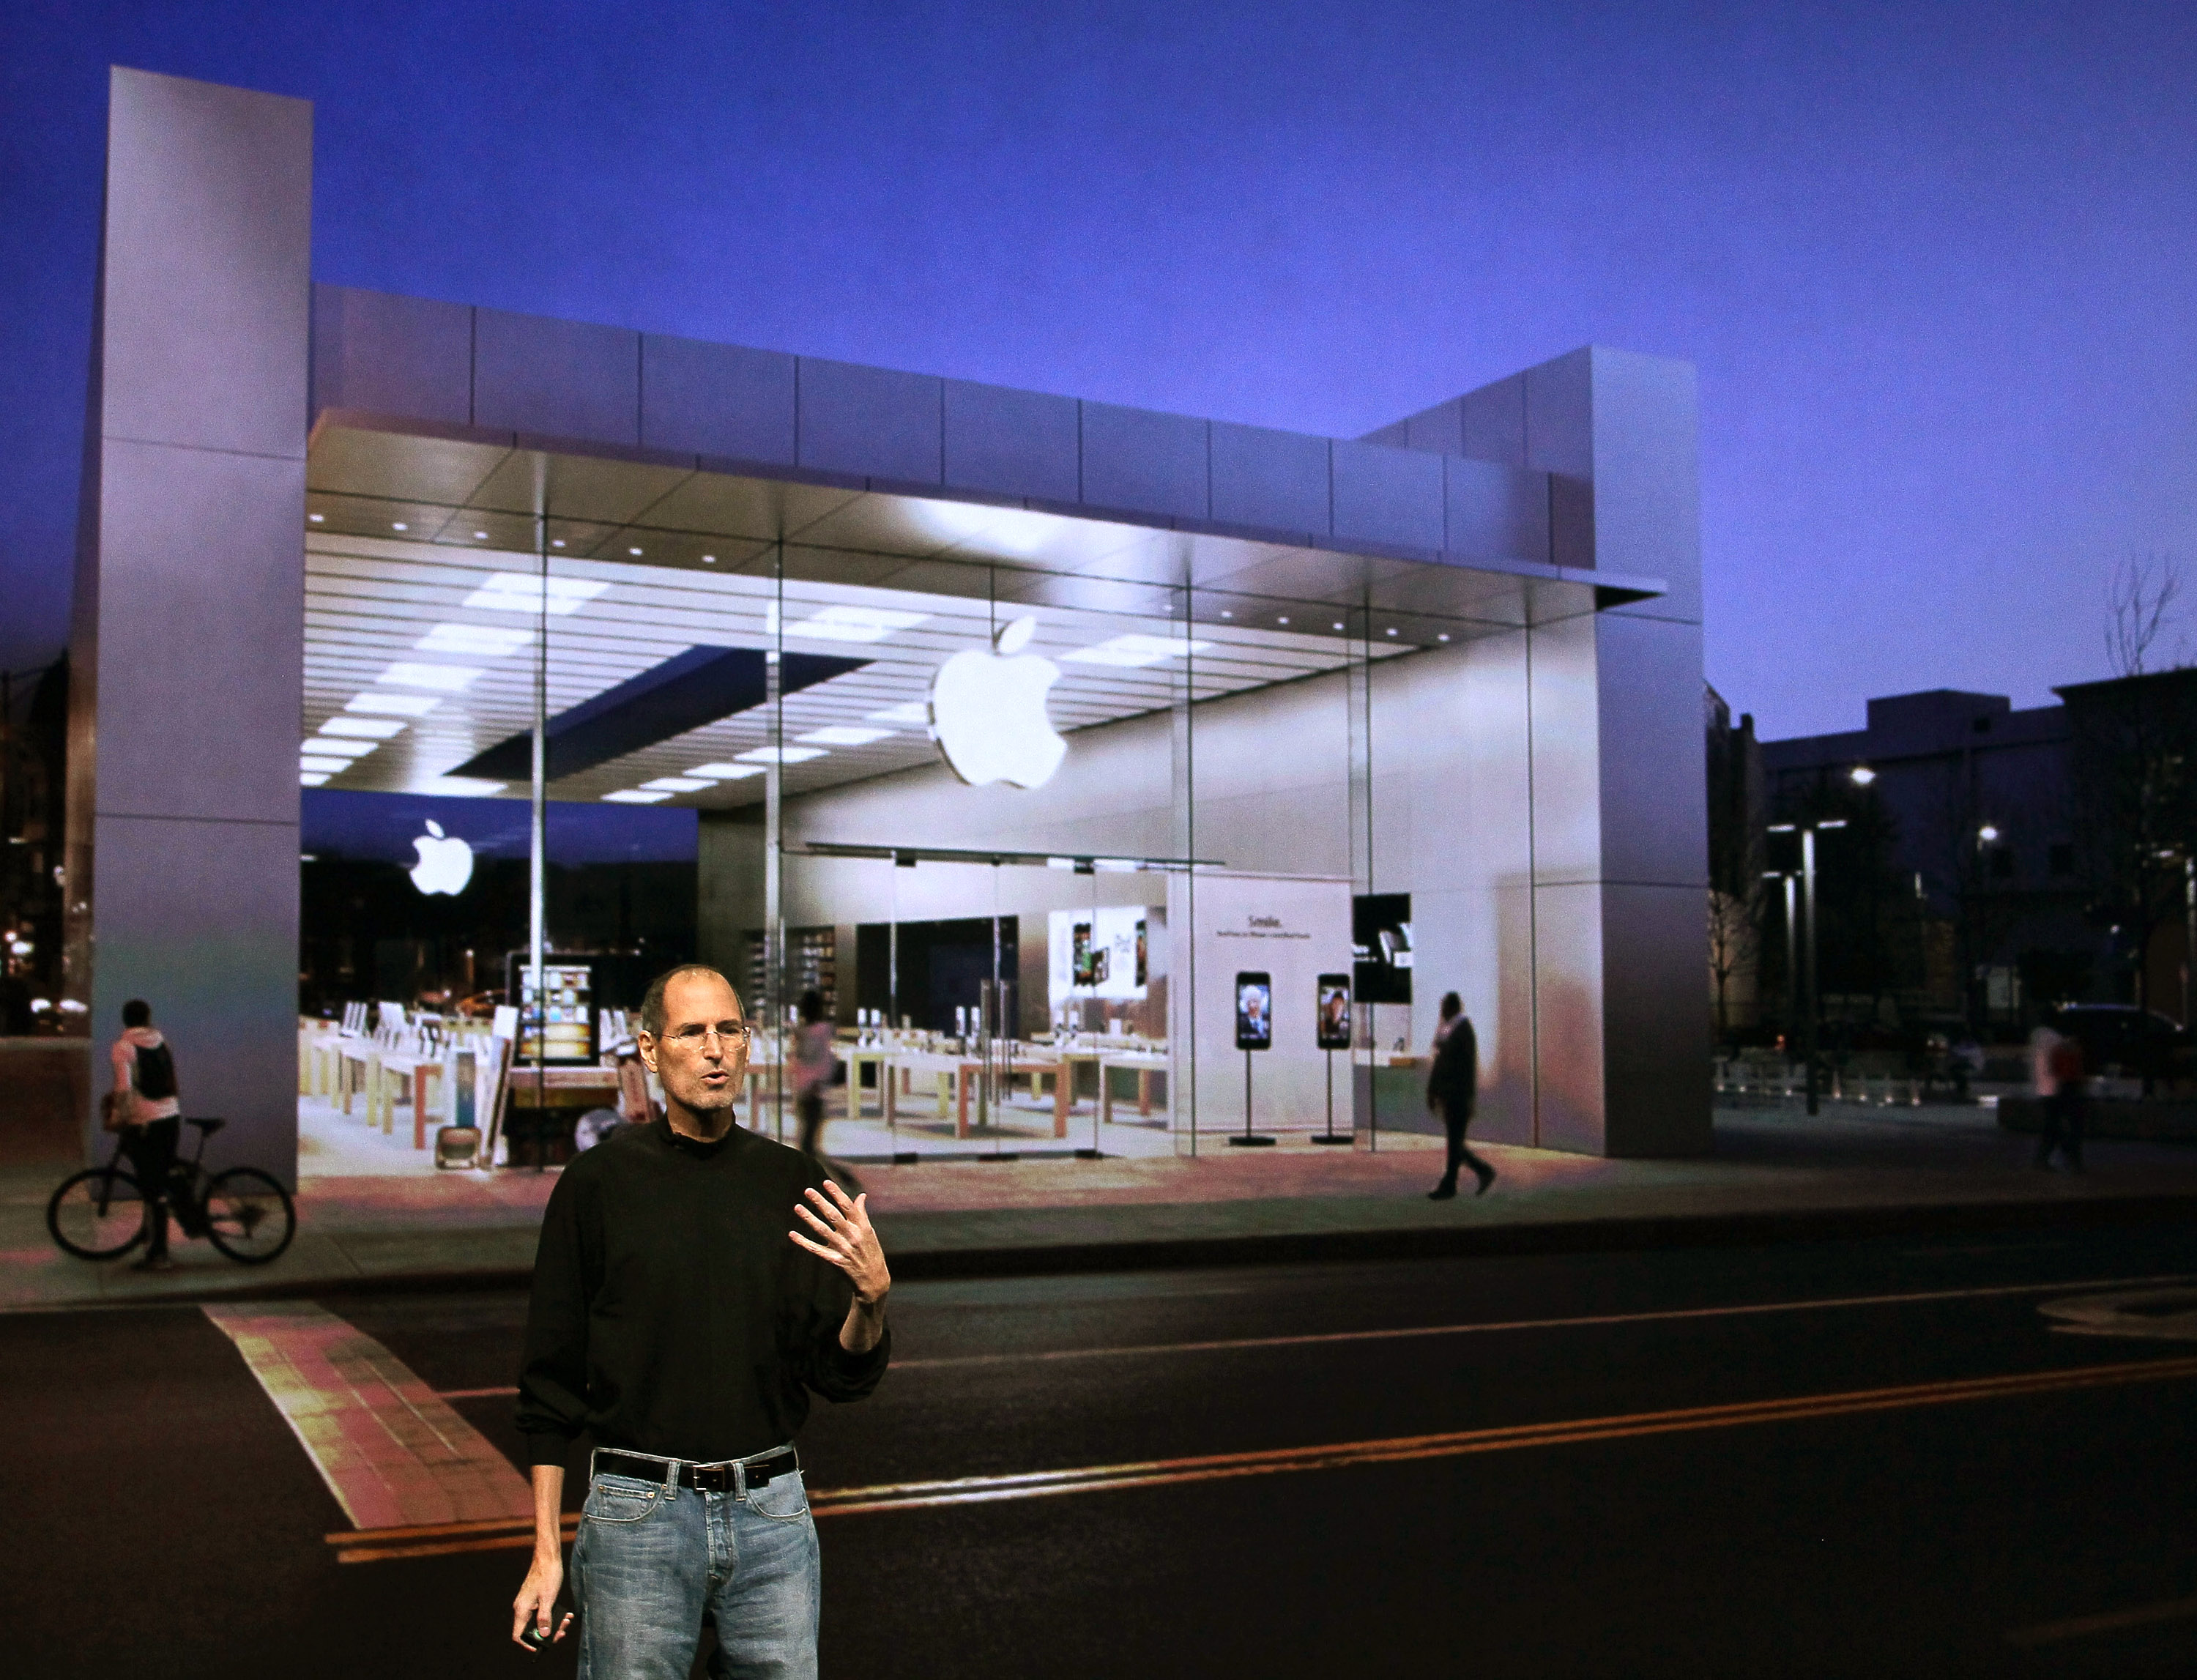 2001 Apple opened its first Apple Stores in 2001, with the original two stores in Virginia and California. On the opening day, thousands of Apple fans stood in line and collectively spent over half a million dollars.